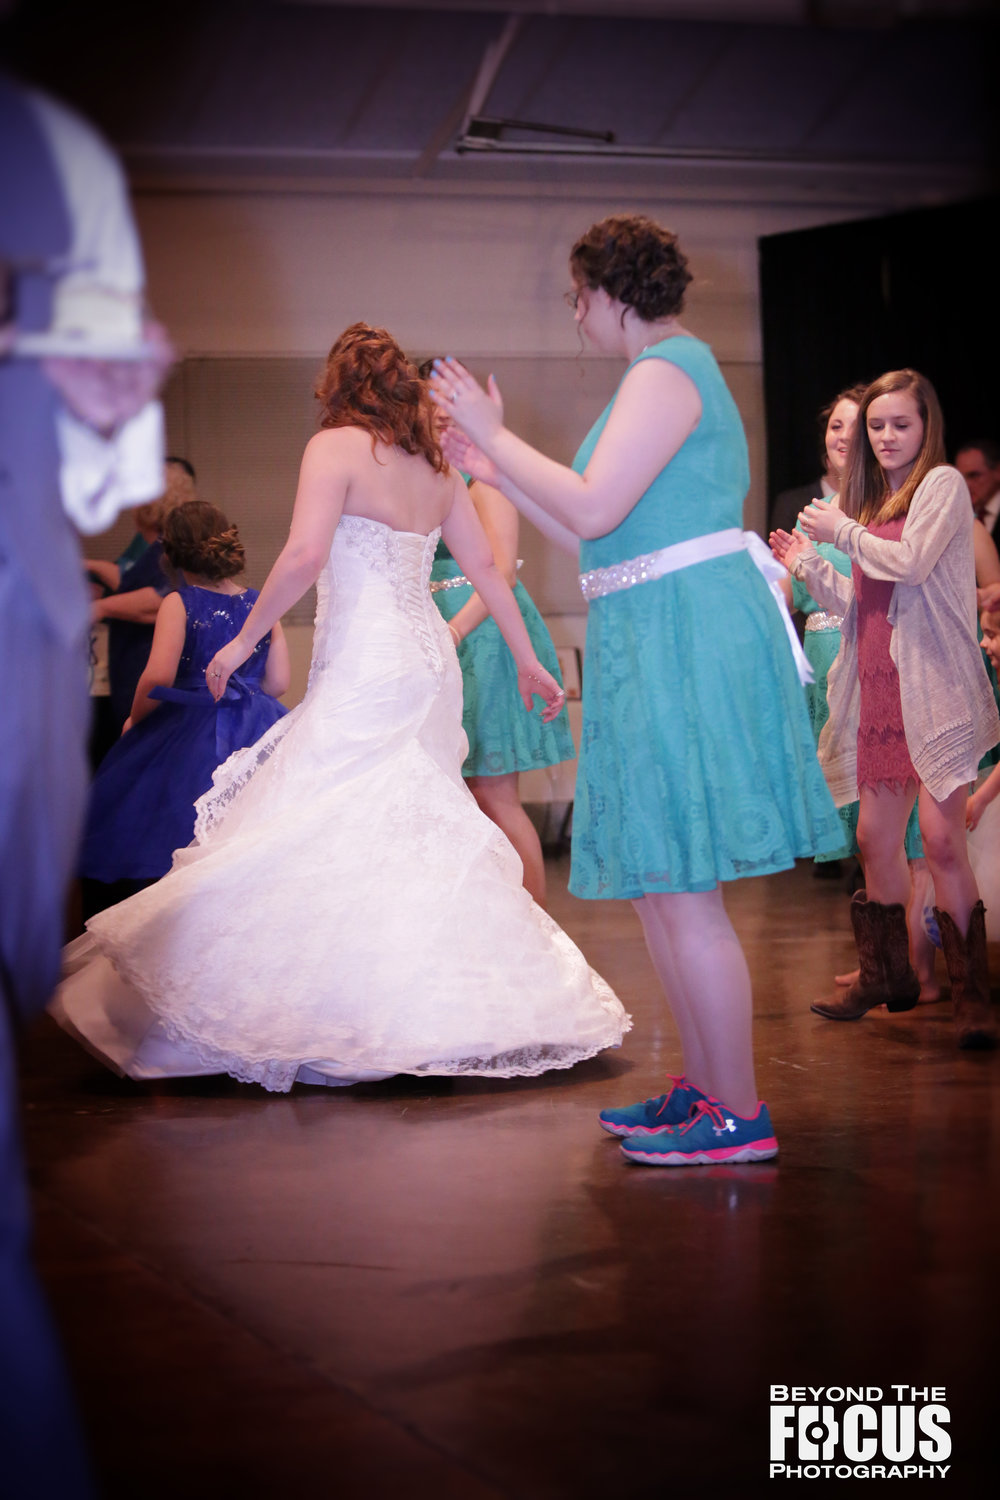 Alex_Katie_WeddingReception__131.jpg